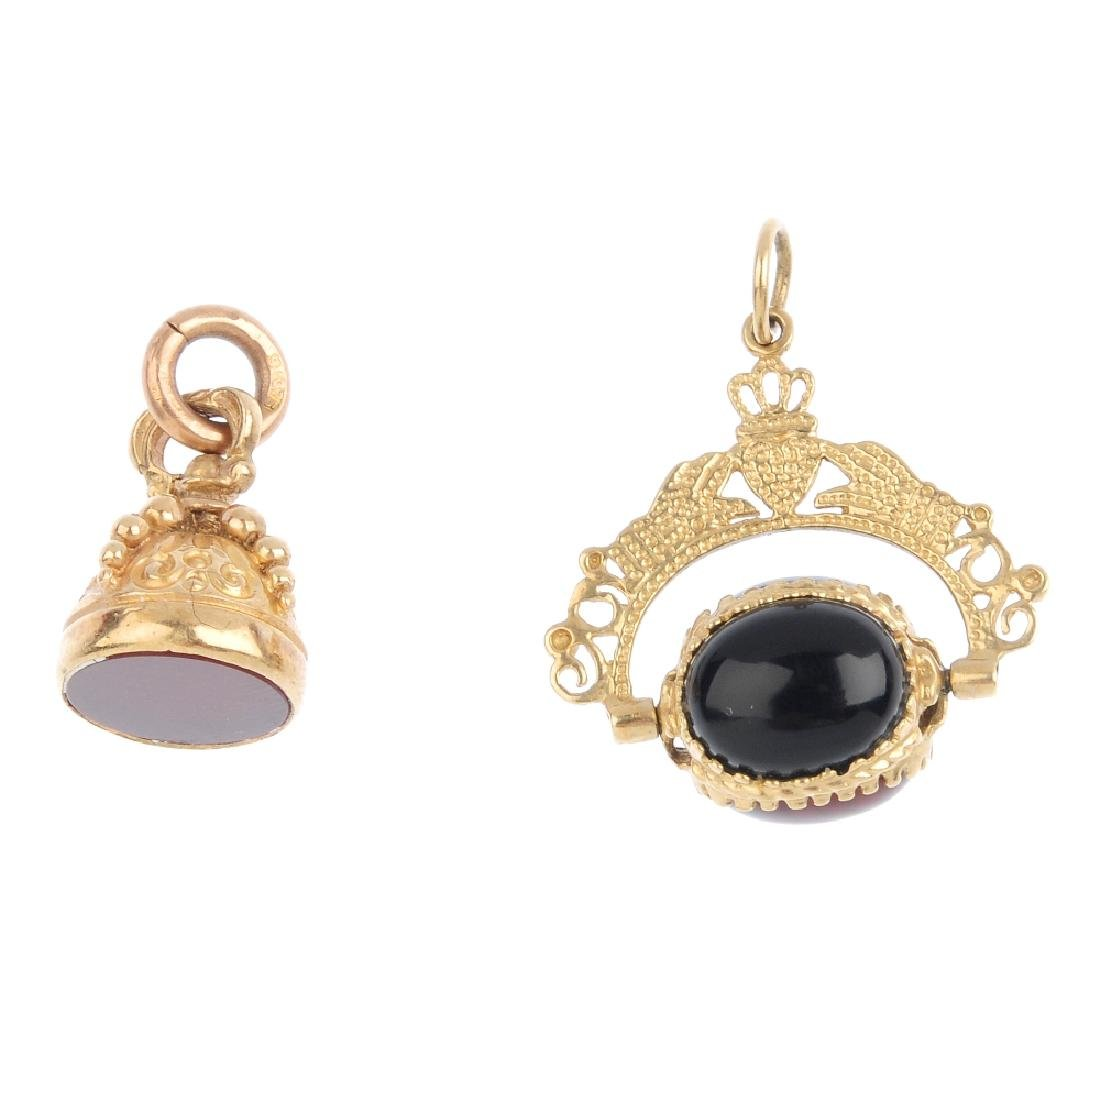 Two fobs. To include a hardstone swivel fob with